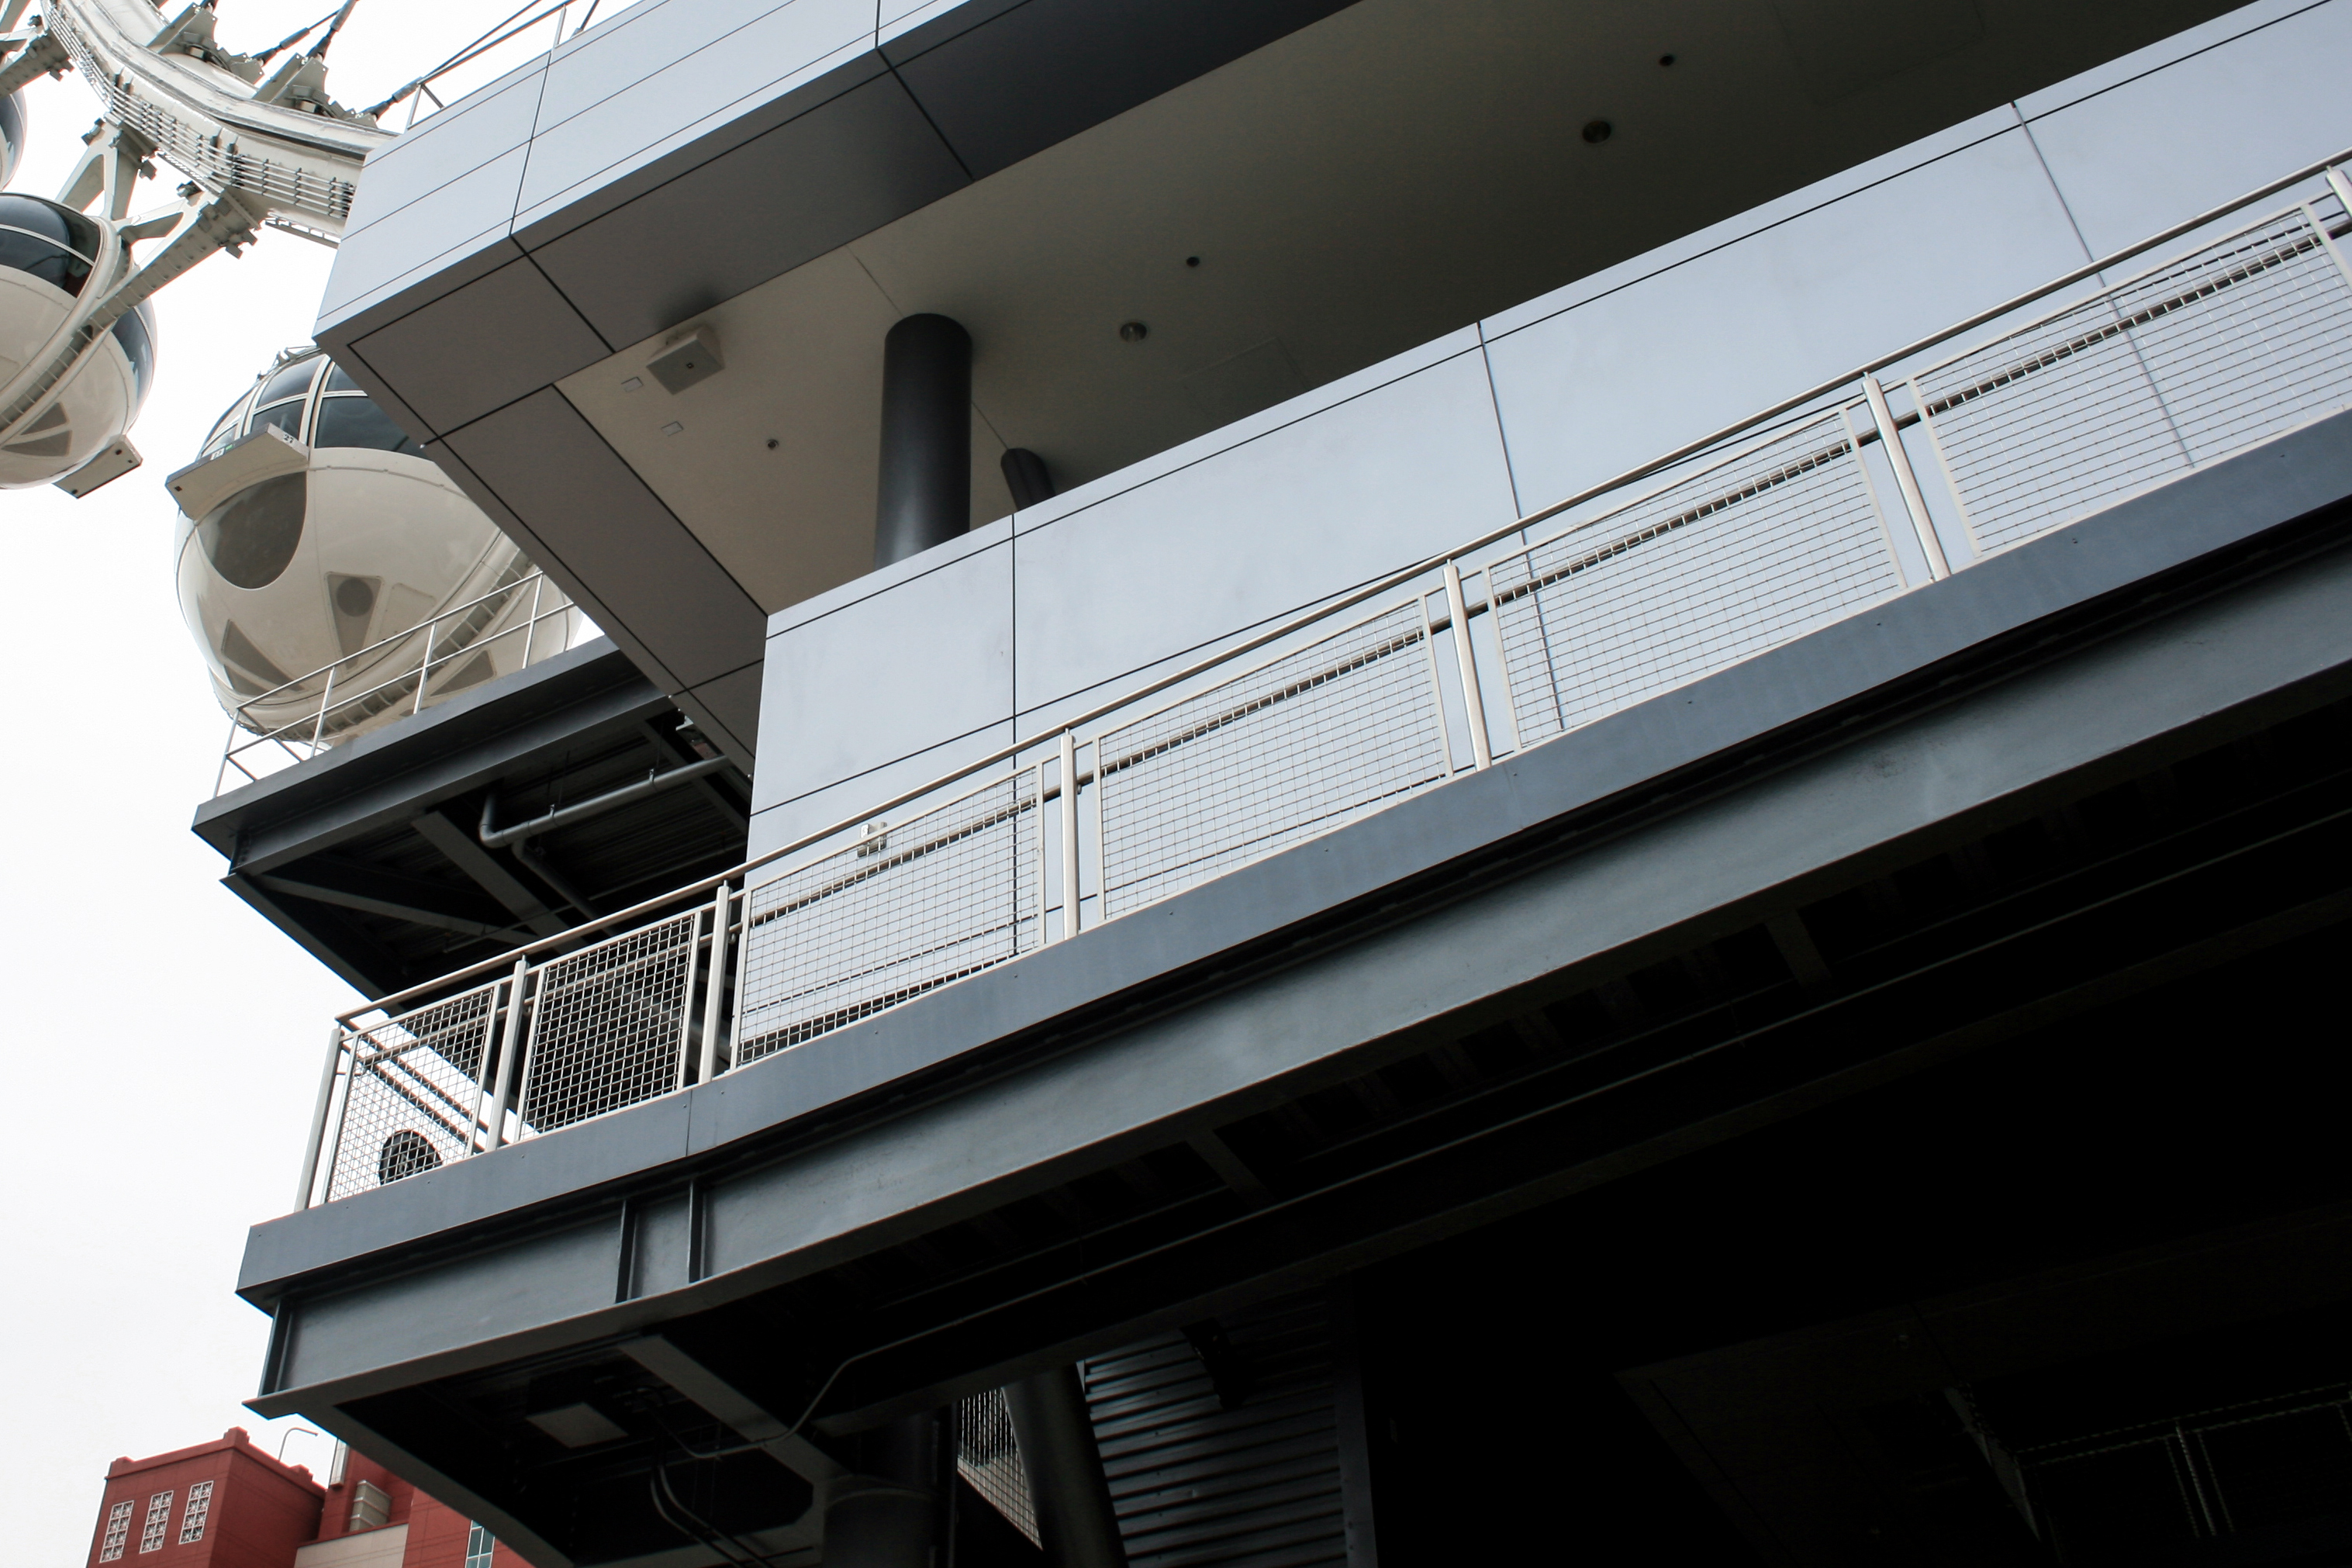 L-62 metal fabric is ideal for providing fall protection and withstanding heavy use at the popular destination.